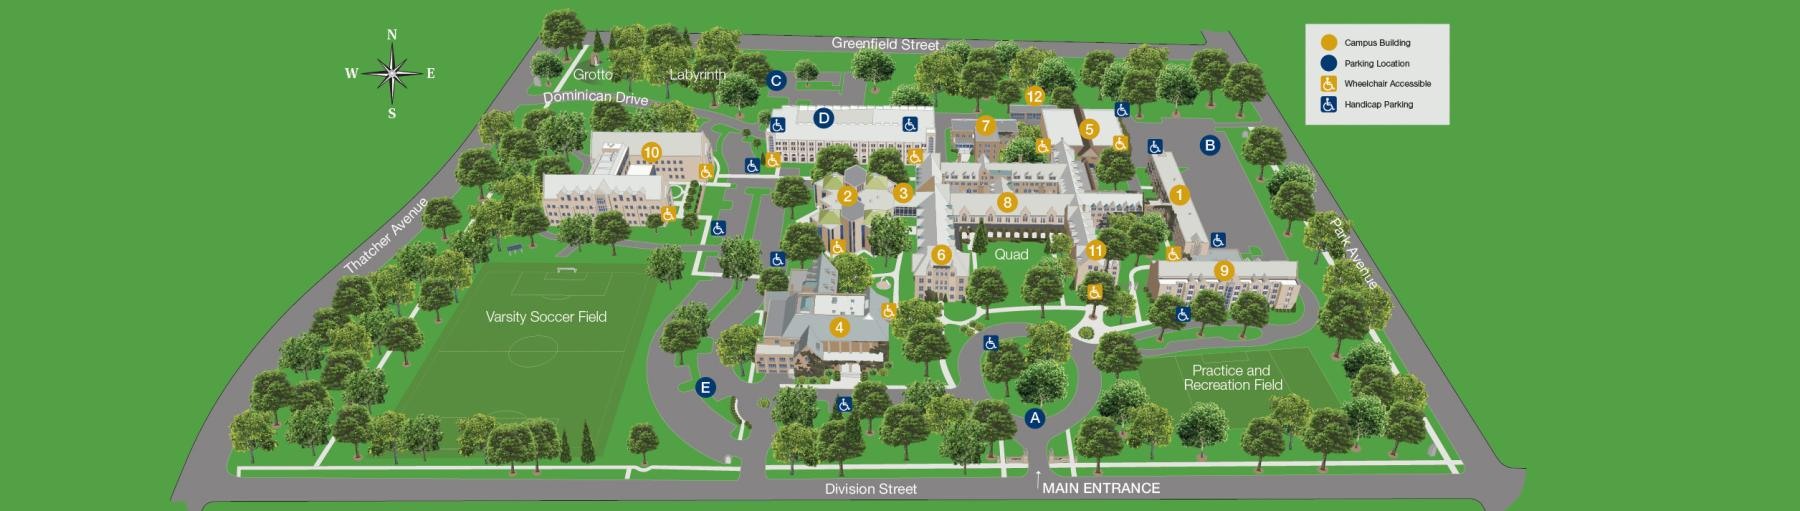 Dominican University Map Directions and Campus Map | Dominican University